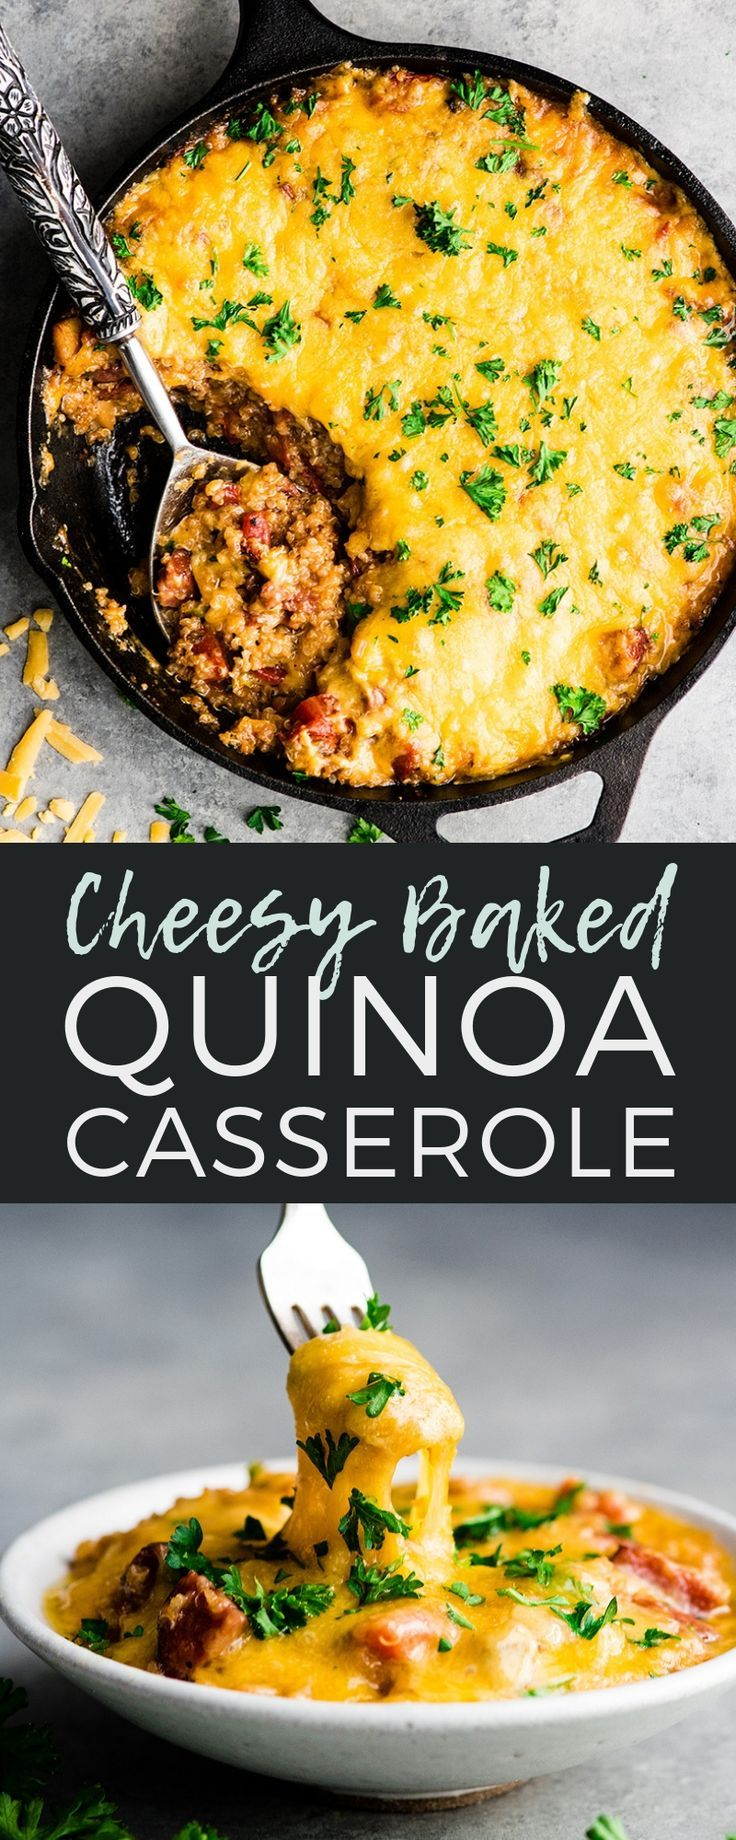 Photo of This Baked Quinoa Casserole is an easy, hearty main dish that is perfect for fal…